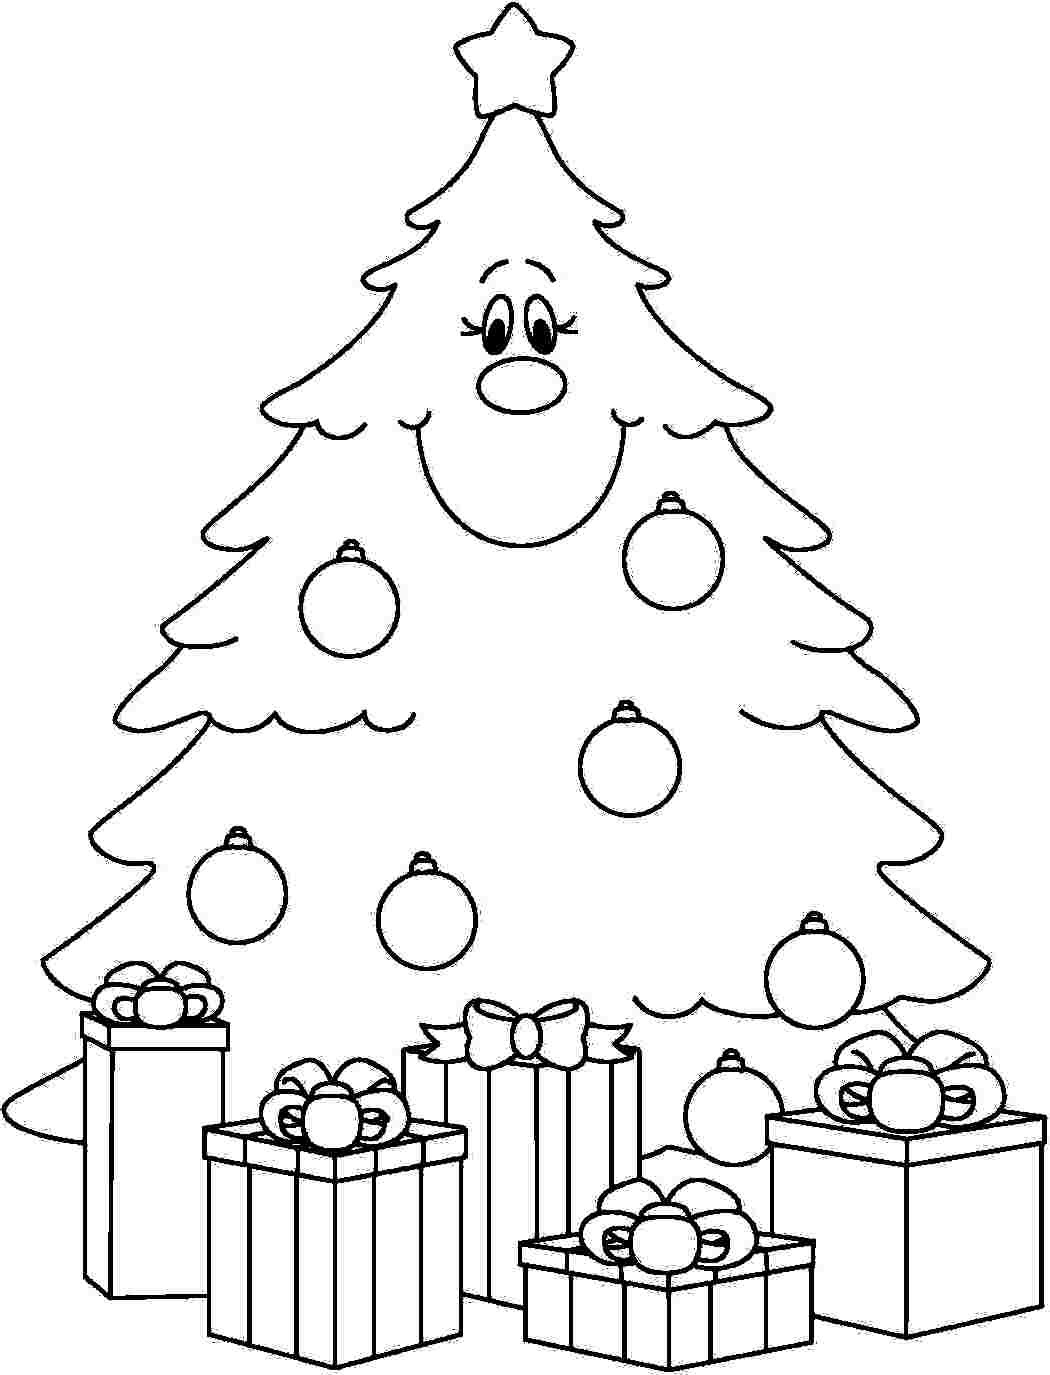 Best ideas about Christmas Tree Coloring Pages For Kids . Save or Pin Under the Christmas Tree EIT Digital Now.